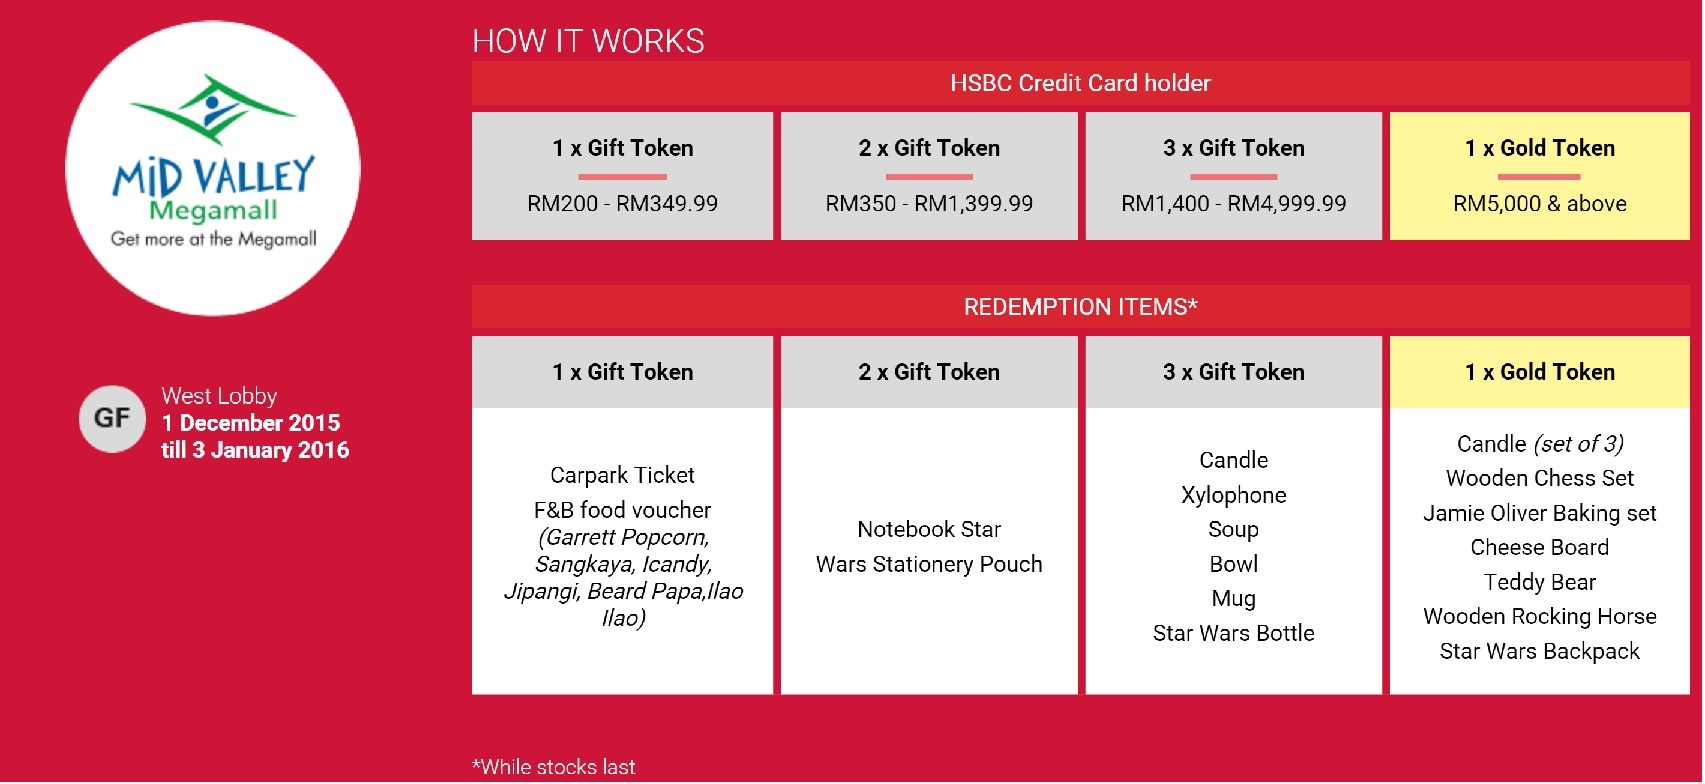 HSBC Credit Card Promotion - HSBC Gift With Purchase at Mid Valley